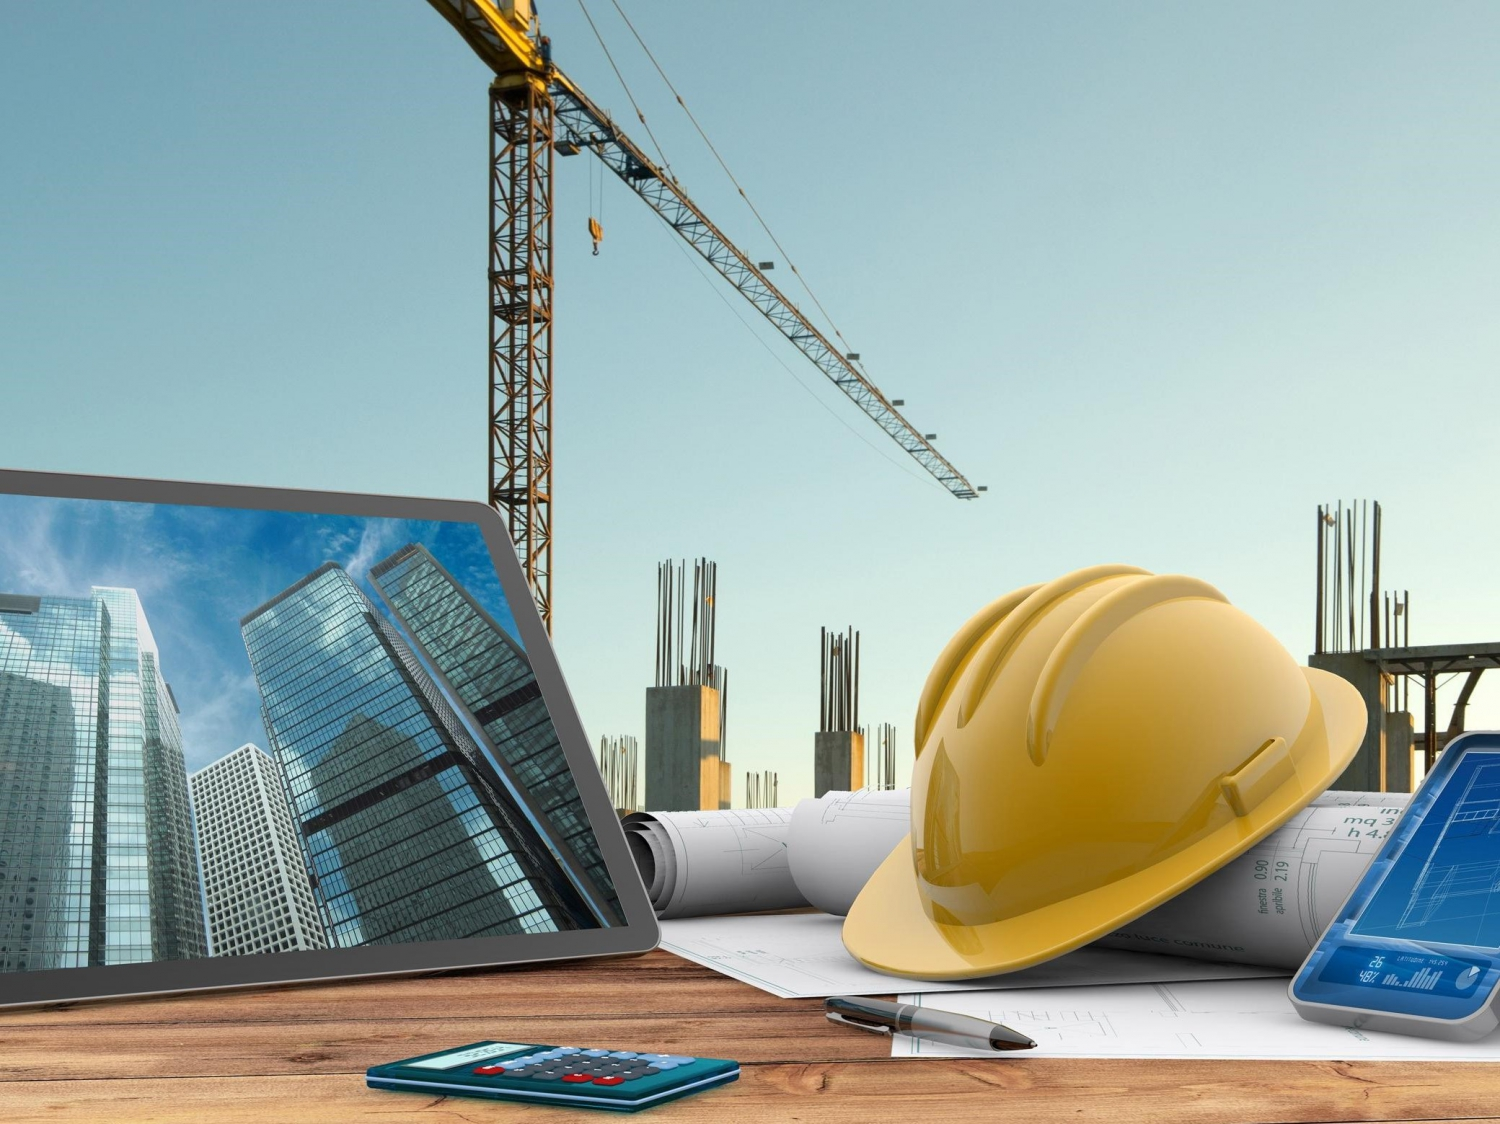 the history and future of construction construction essay History of procurement strategy construction essay construction technology guidance and marking scheme construction essay next the malaysian construction industry construction essay free online plagiarism checker write better with our online tool.